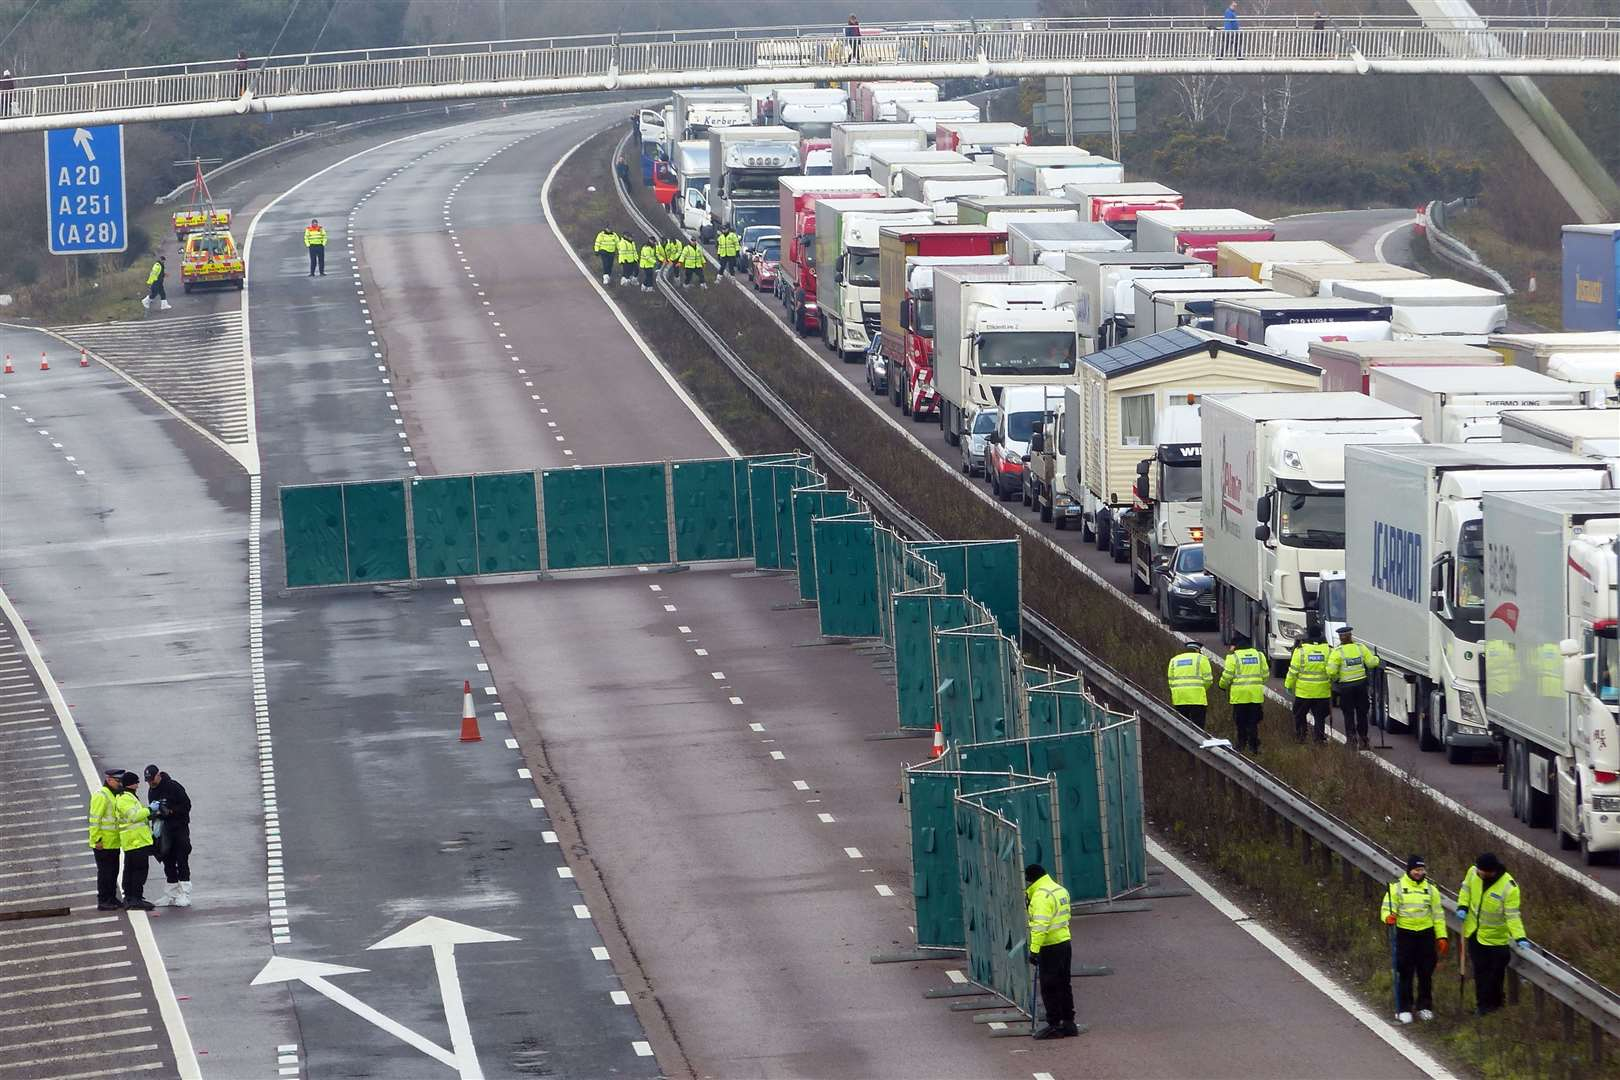 Police on the M20 where Dominique Worrall's body was found (1023566)